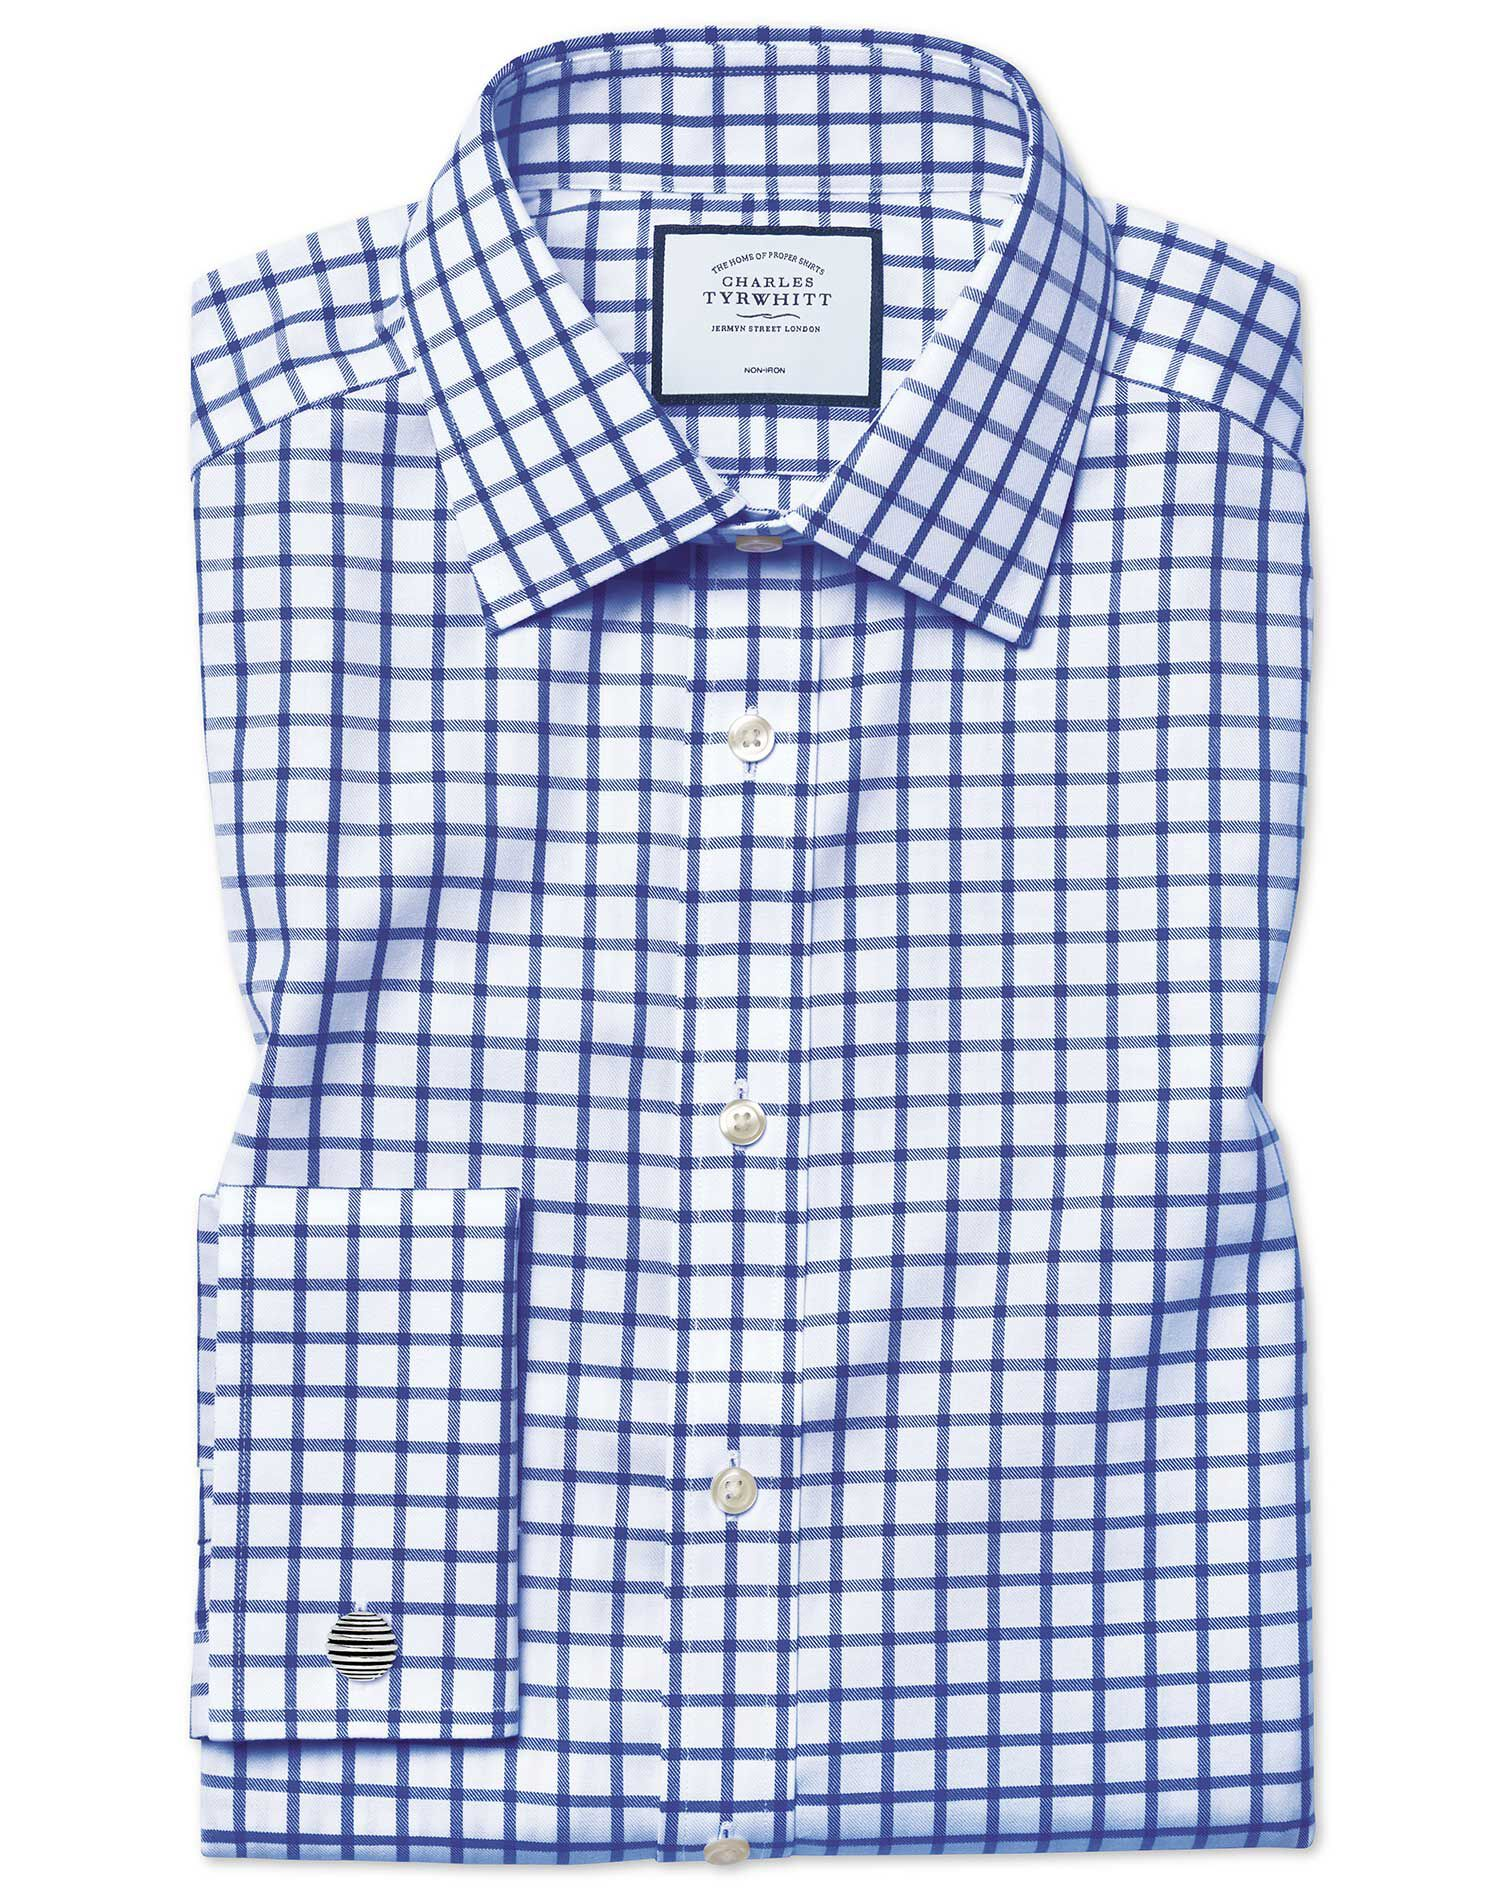 Extra Slim Fit Non-Iron Twill Grid Check Royal Blue Cotton Formal Shirt Single Cuff Size 17/37 by Ch